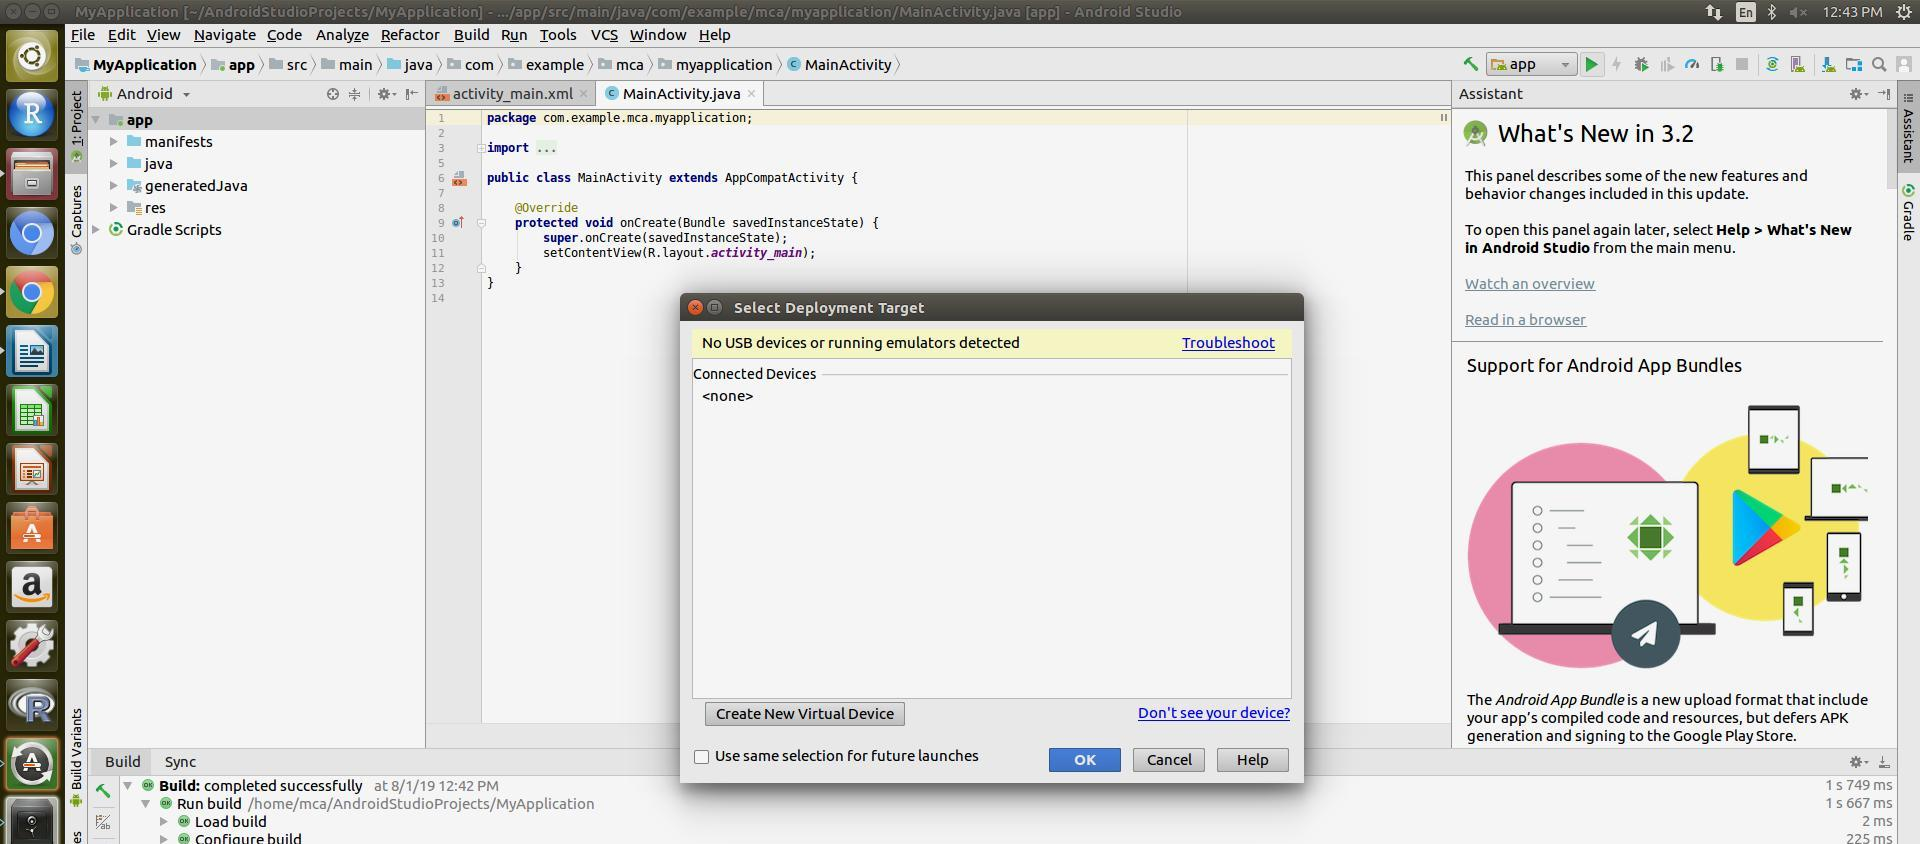 how to install android studio in ubuntu or command to install android studio in ubuntu